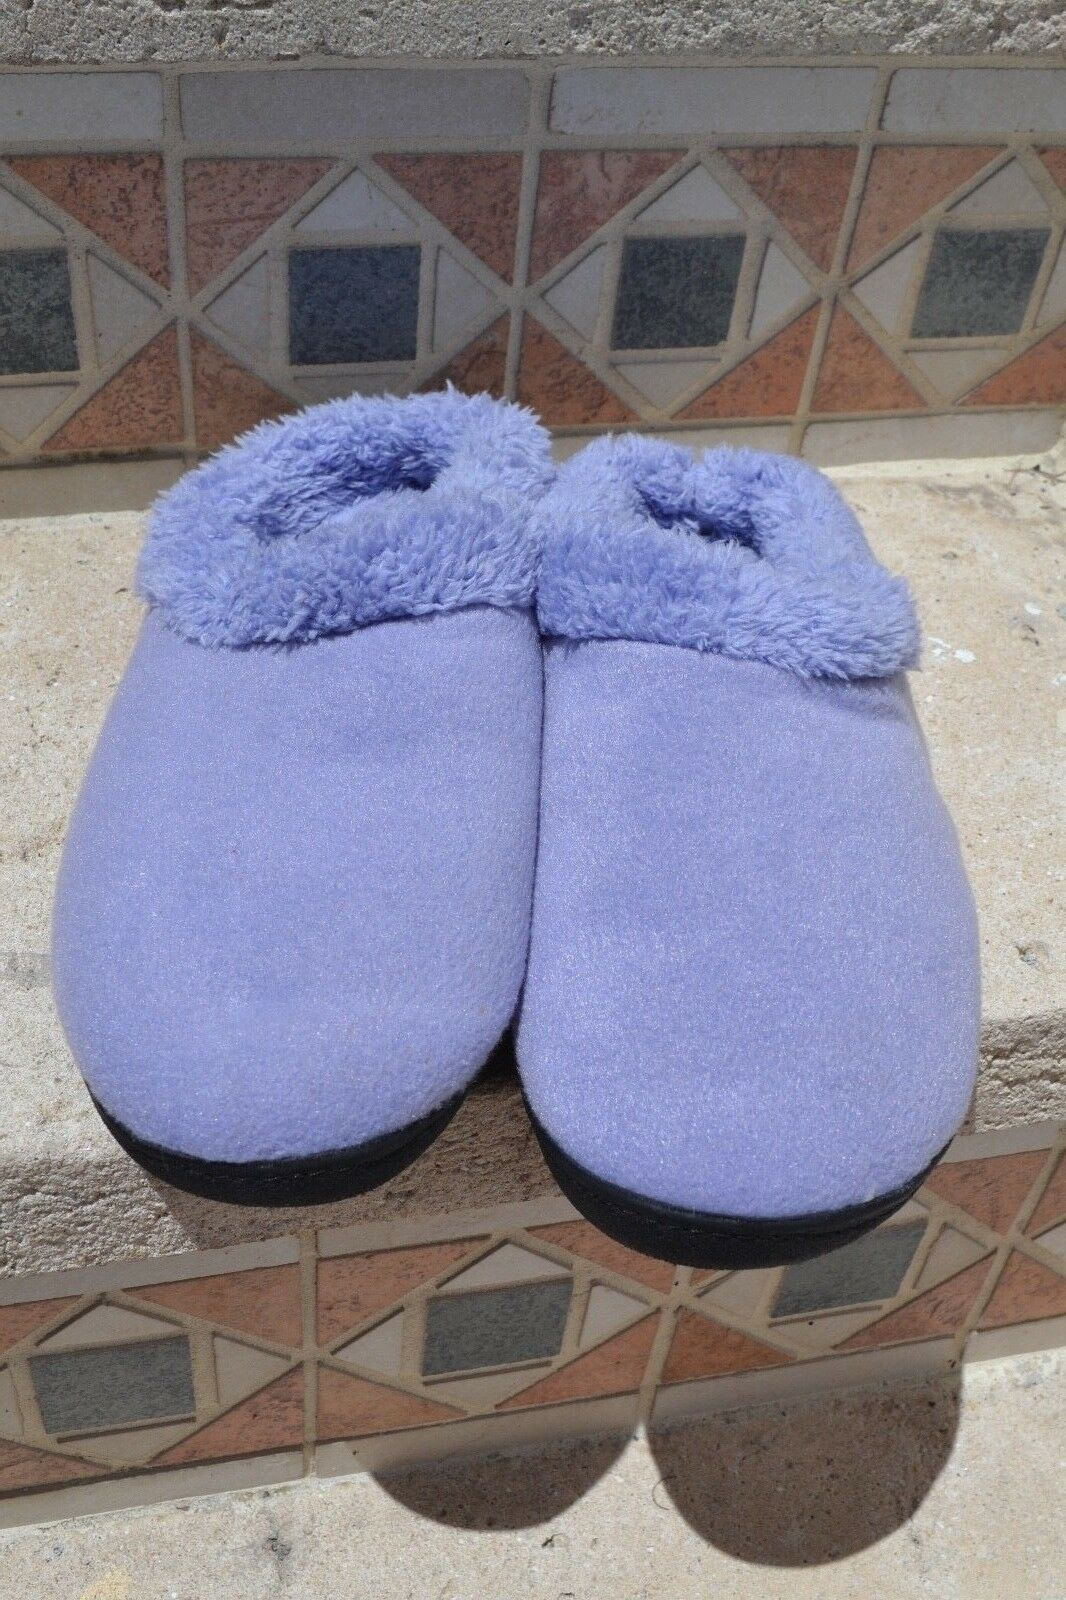 Isotoner Womens Classic Micrederry Hoodback Stone Slippers Lavender Size 9.5-10